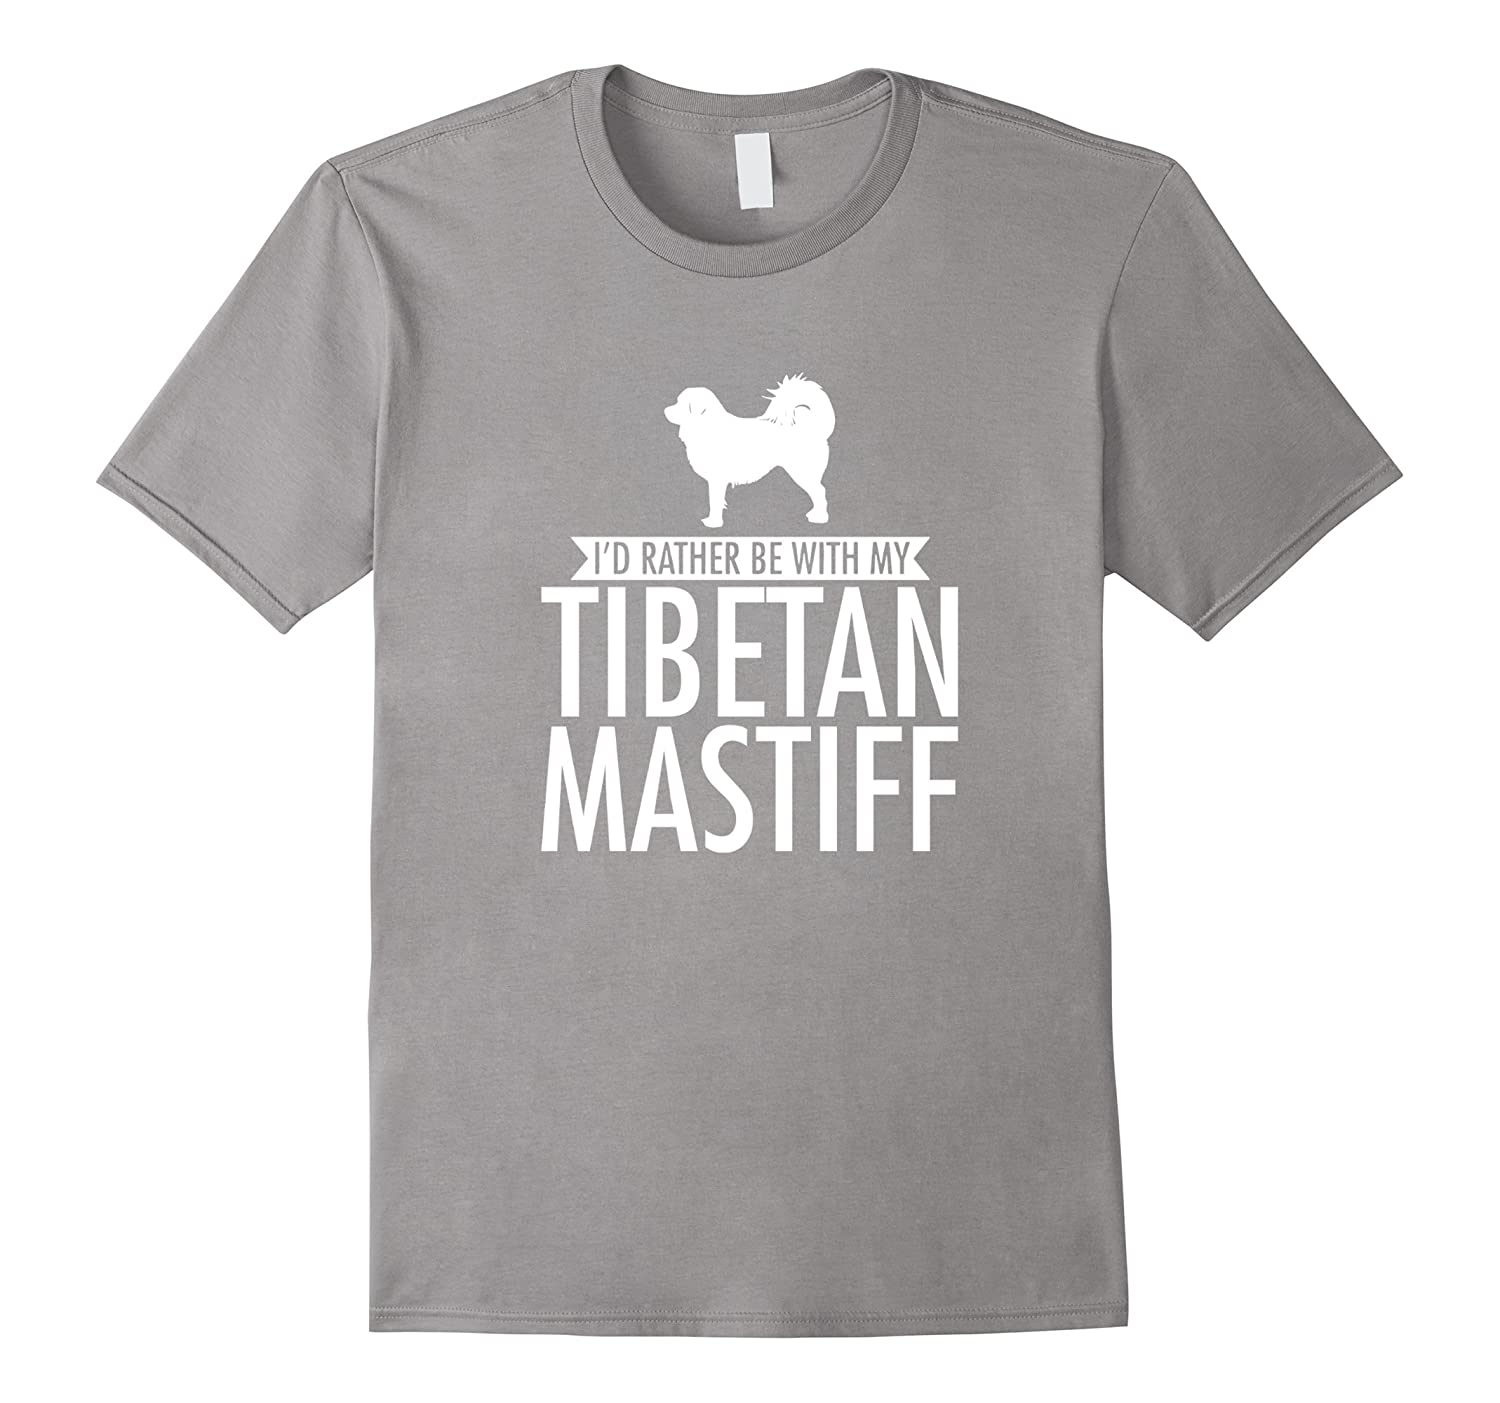 I'd Rather Be With My Tibetan Mastiff T-Shirt-ah my shirt one gift